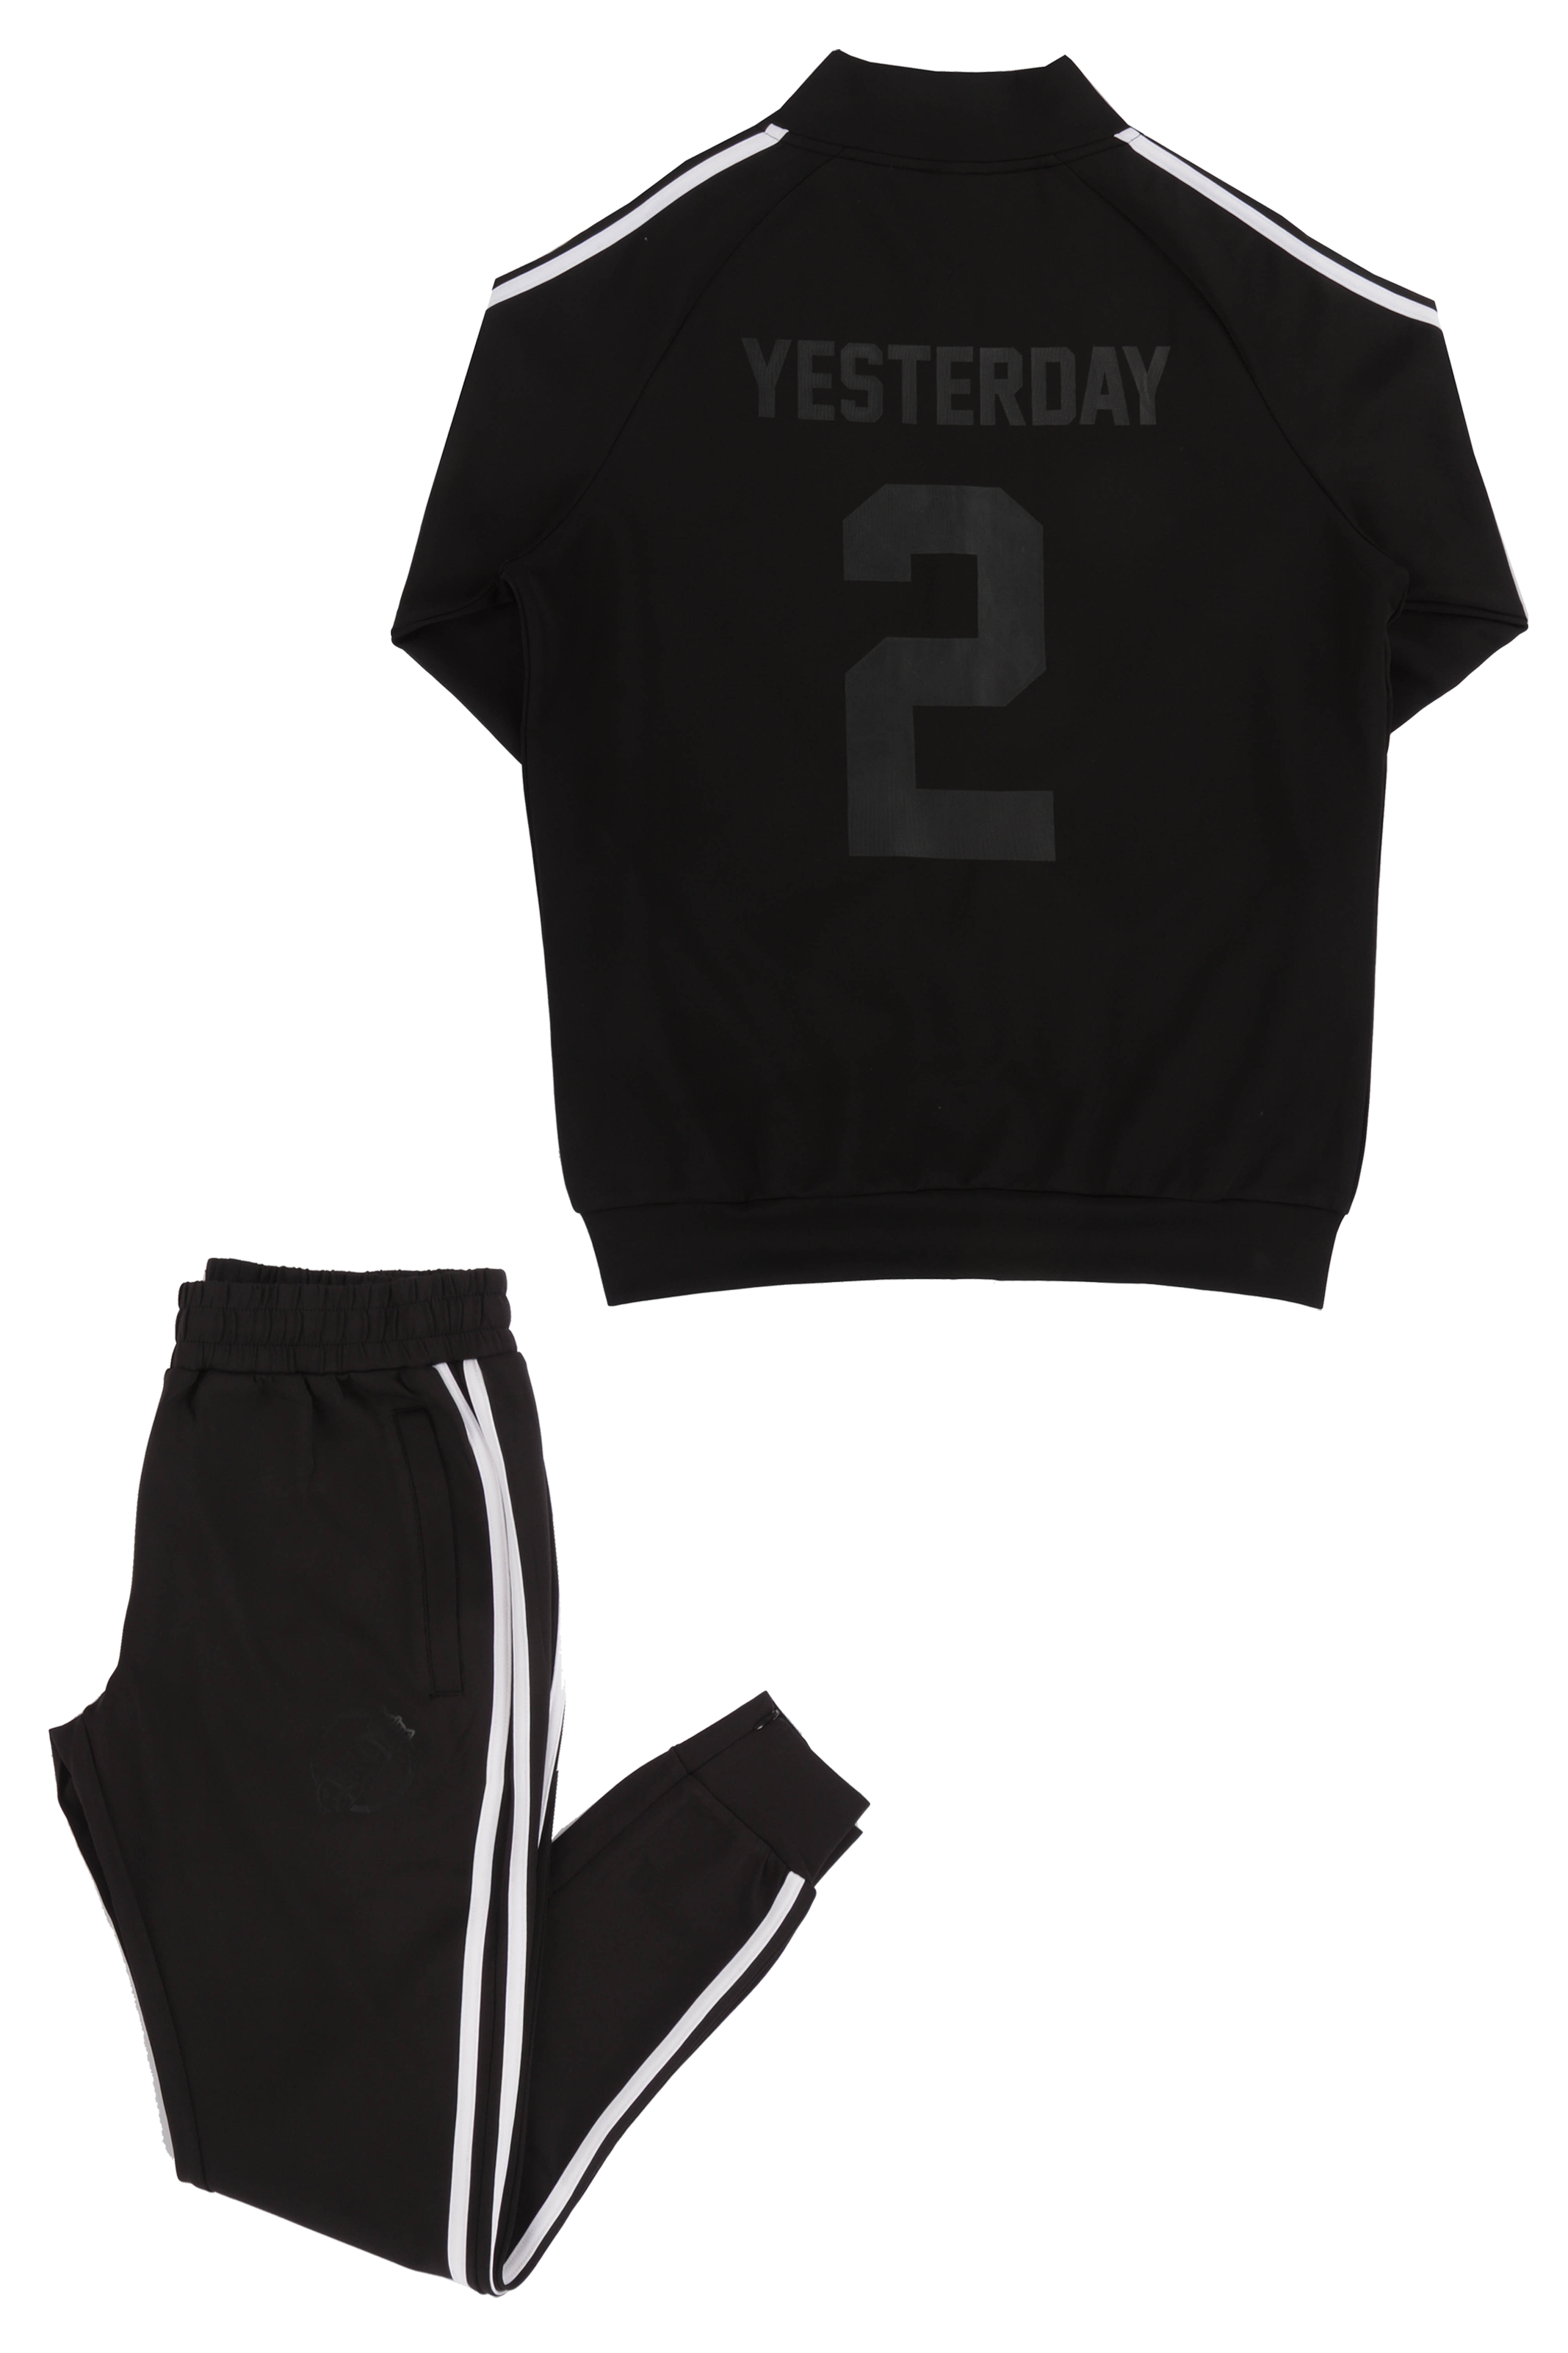 BSL Yesterday 2 Track Suit Bundle - Black